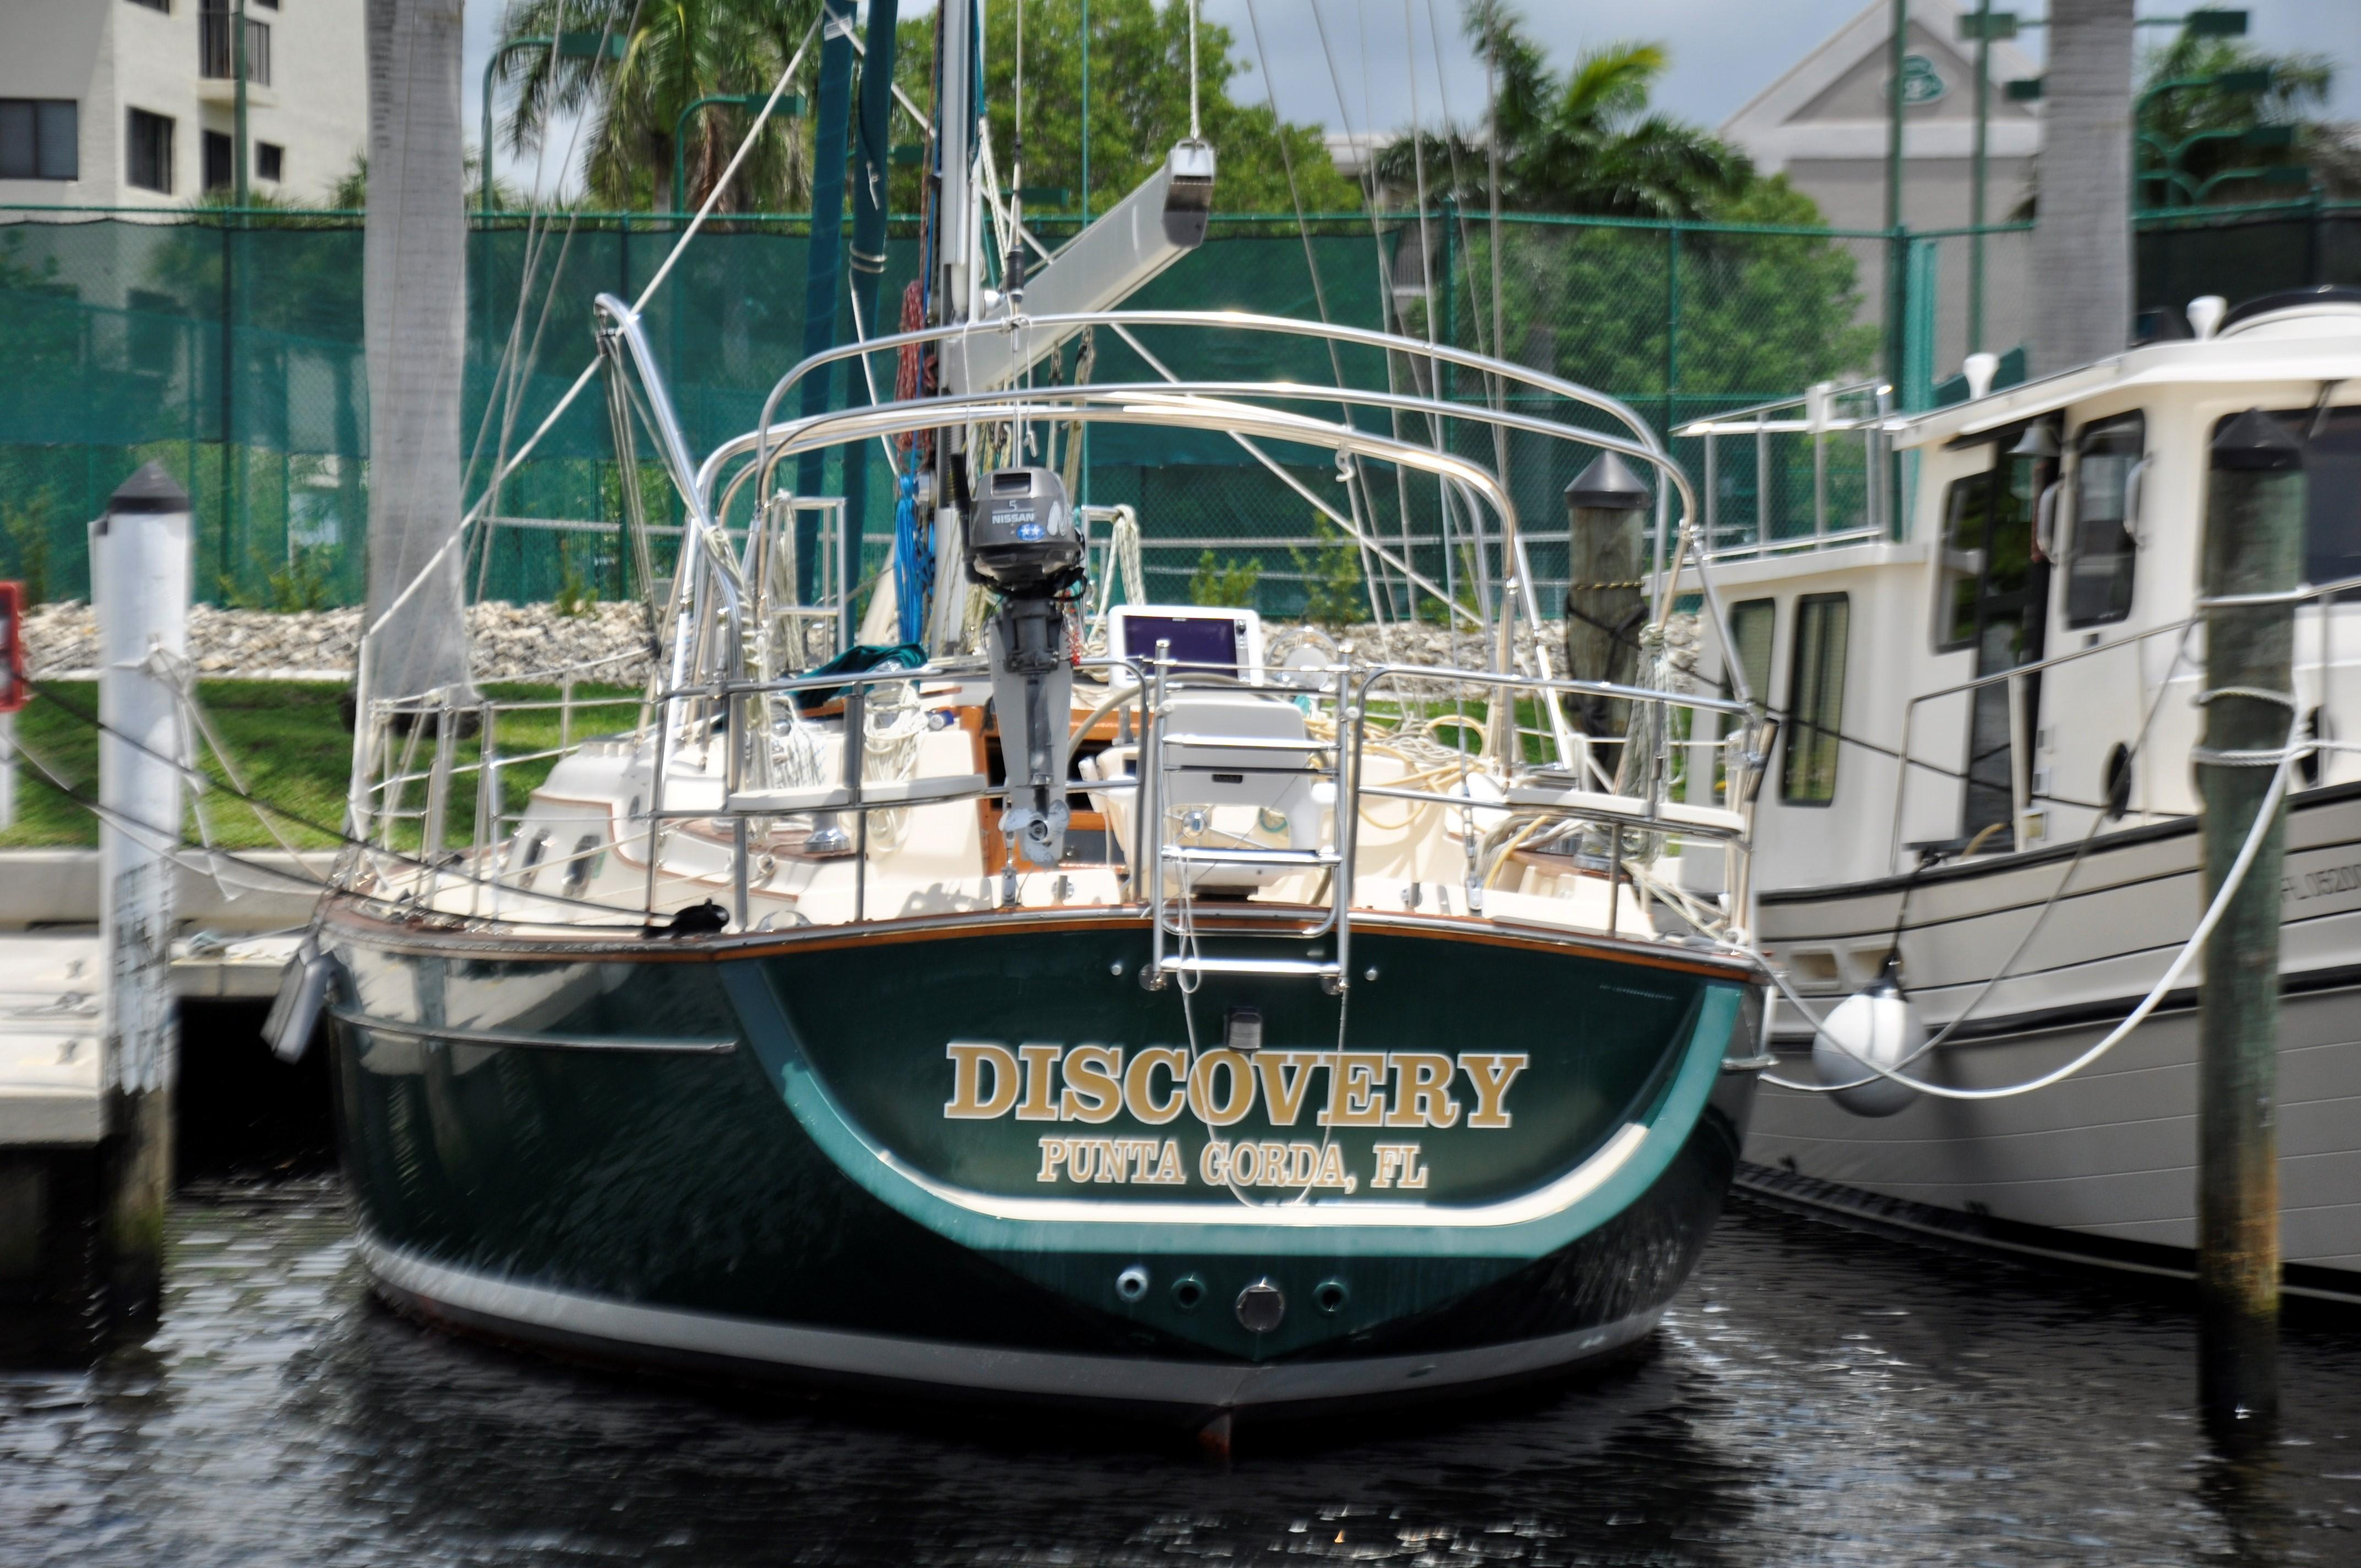 DISCOVERY transom